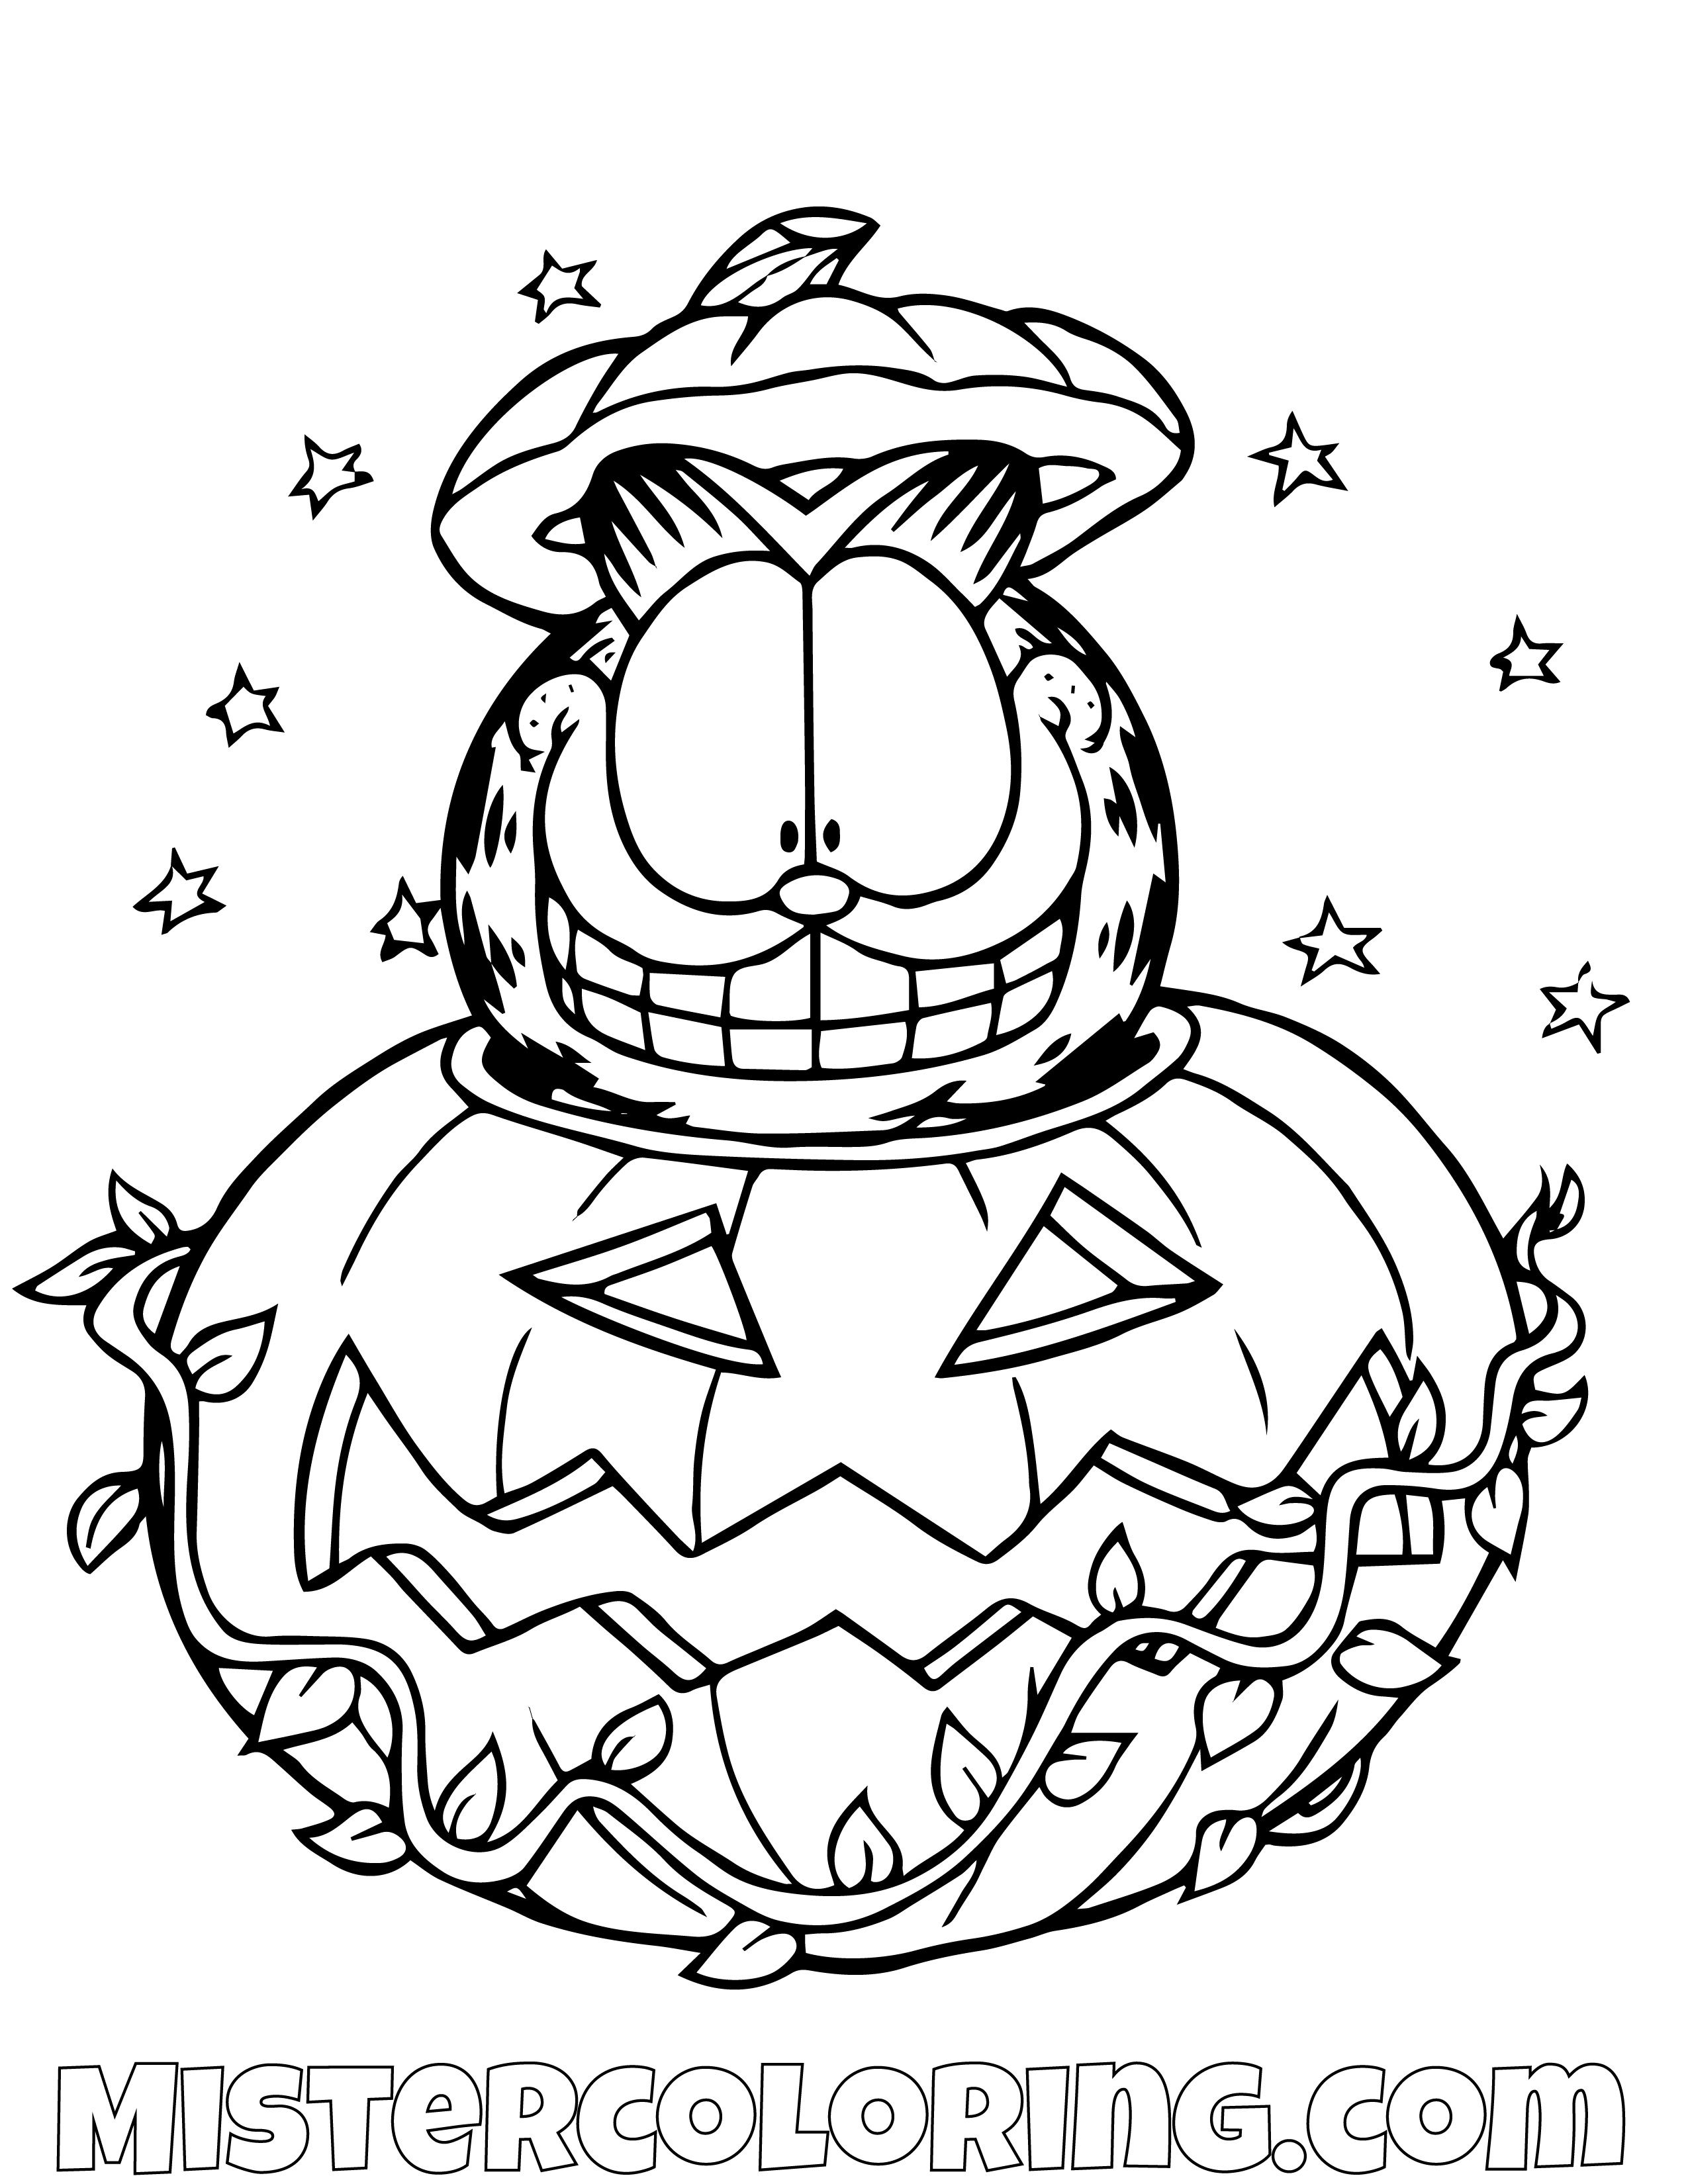 garfield coloring pages copy avery \u2013 Free Printables ... | 3300x2550